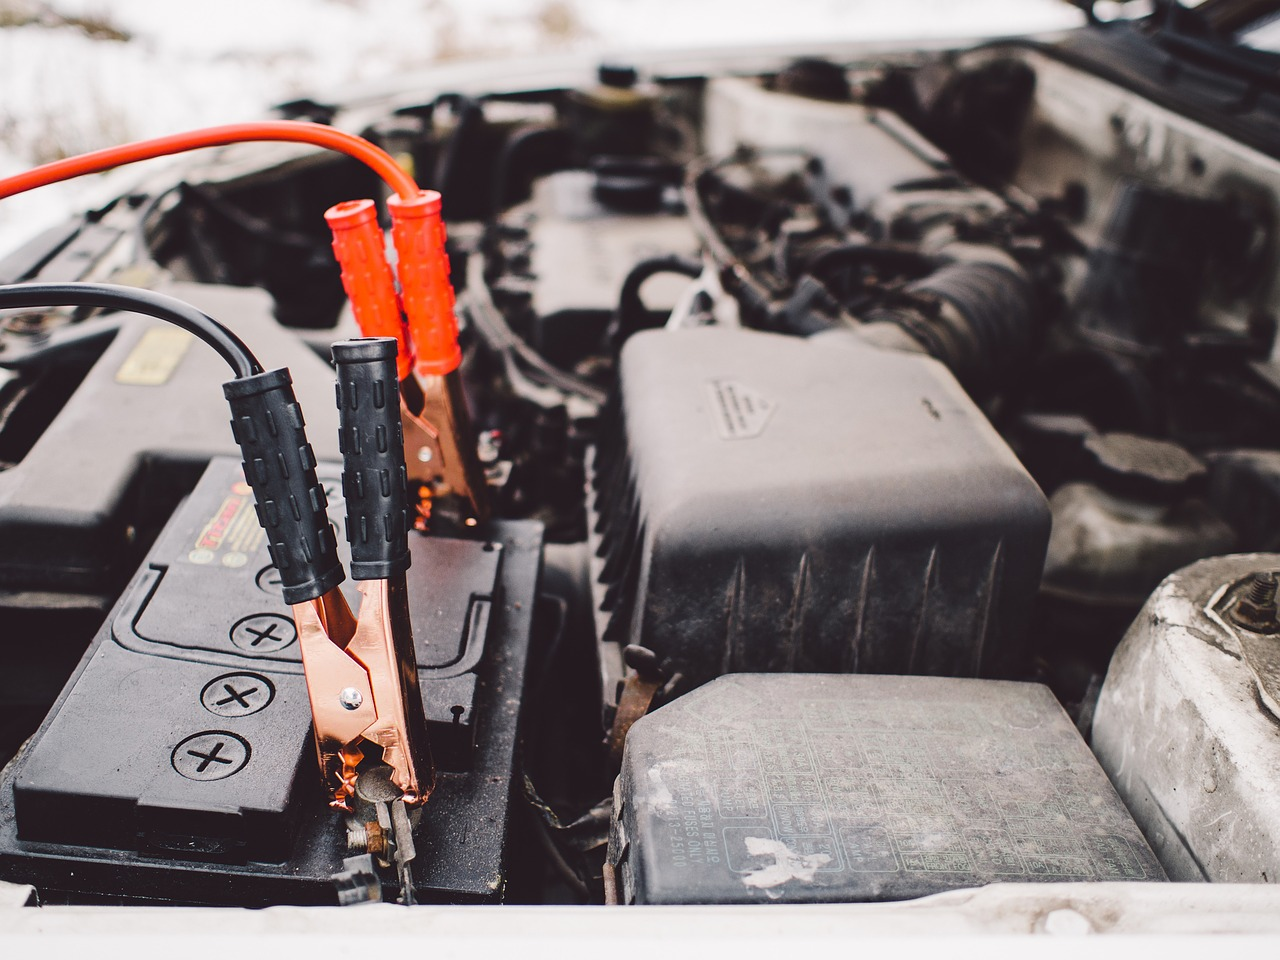 car battery with jump leads attached